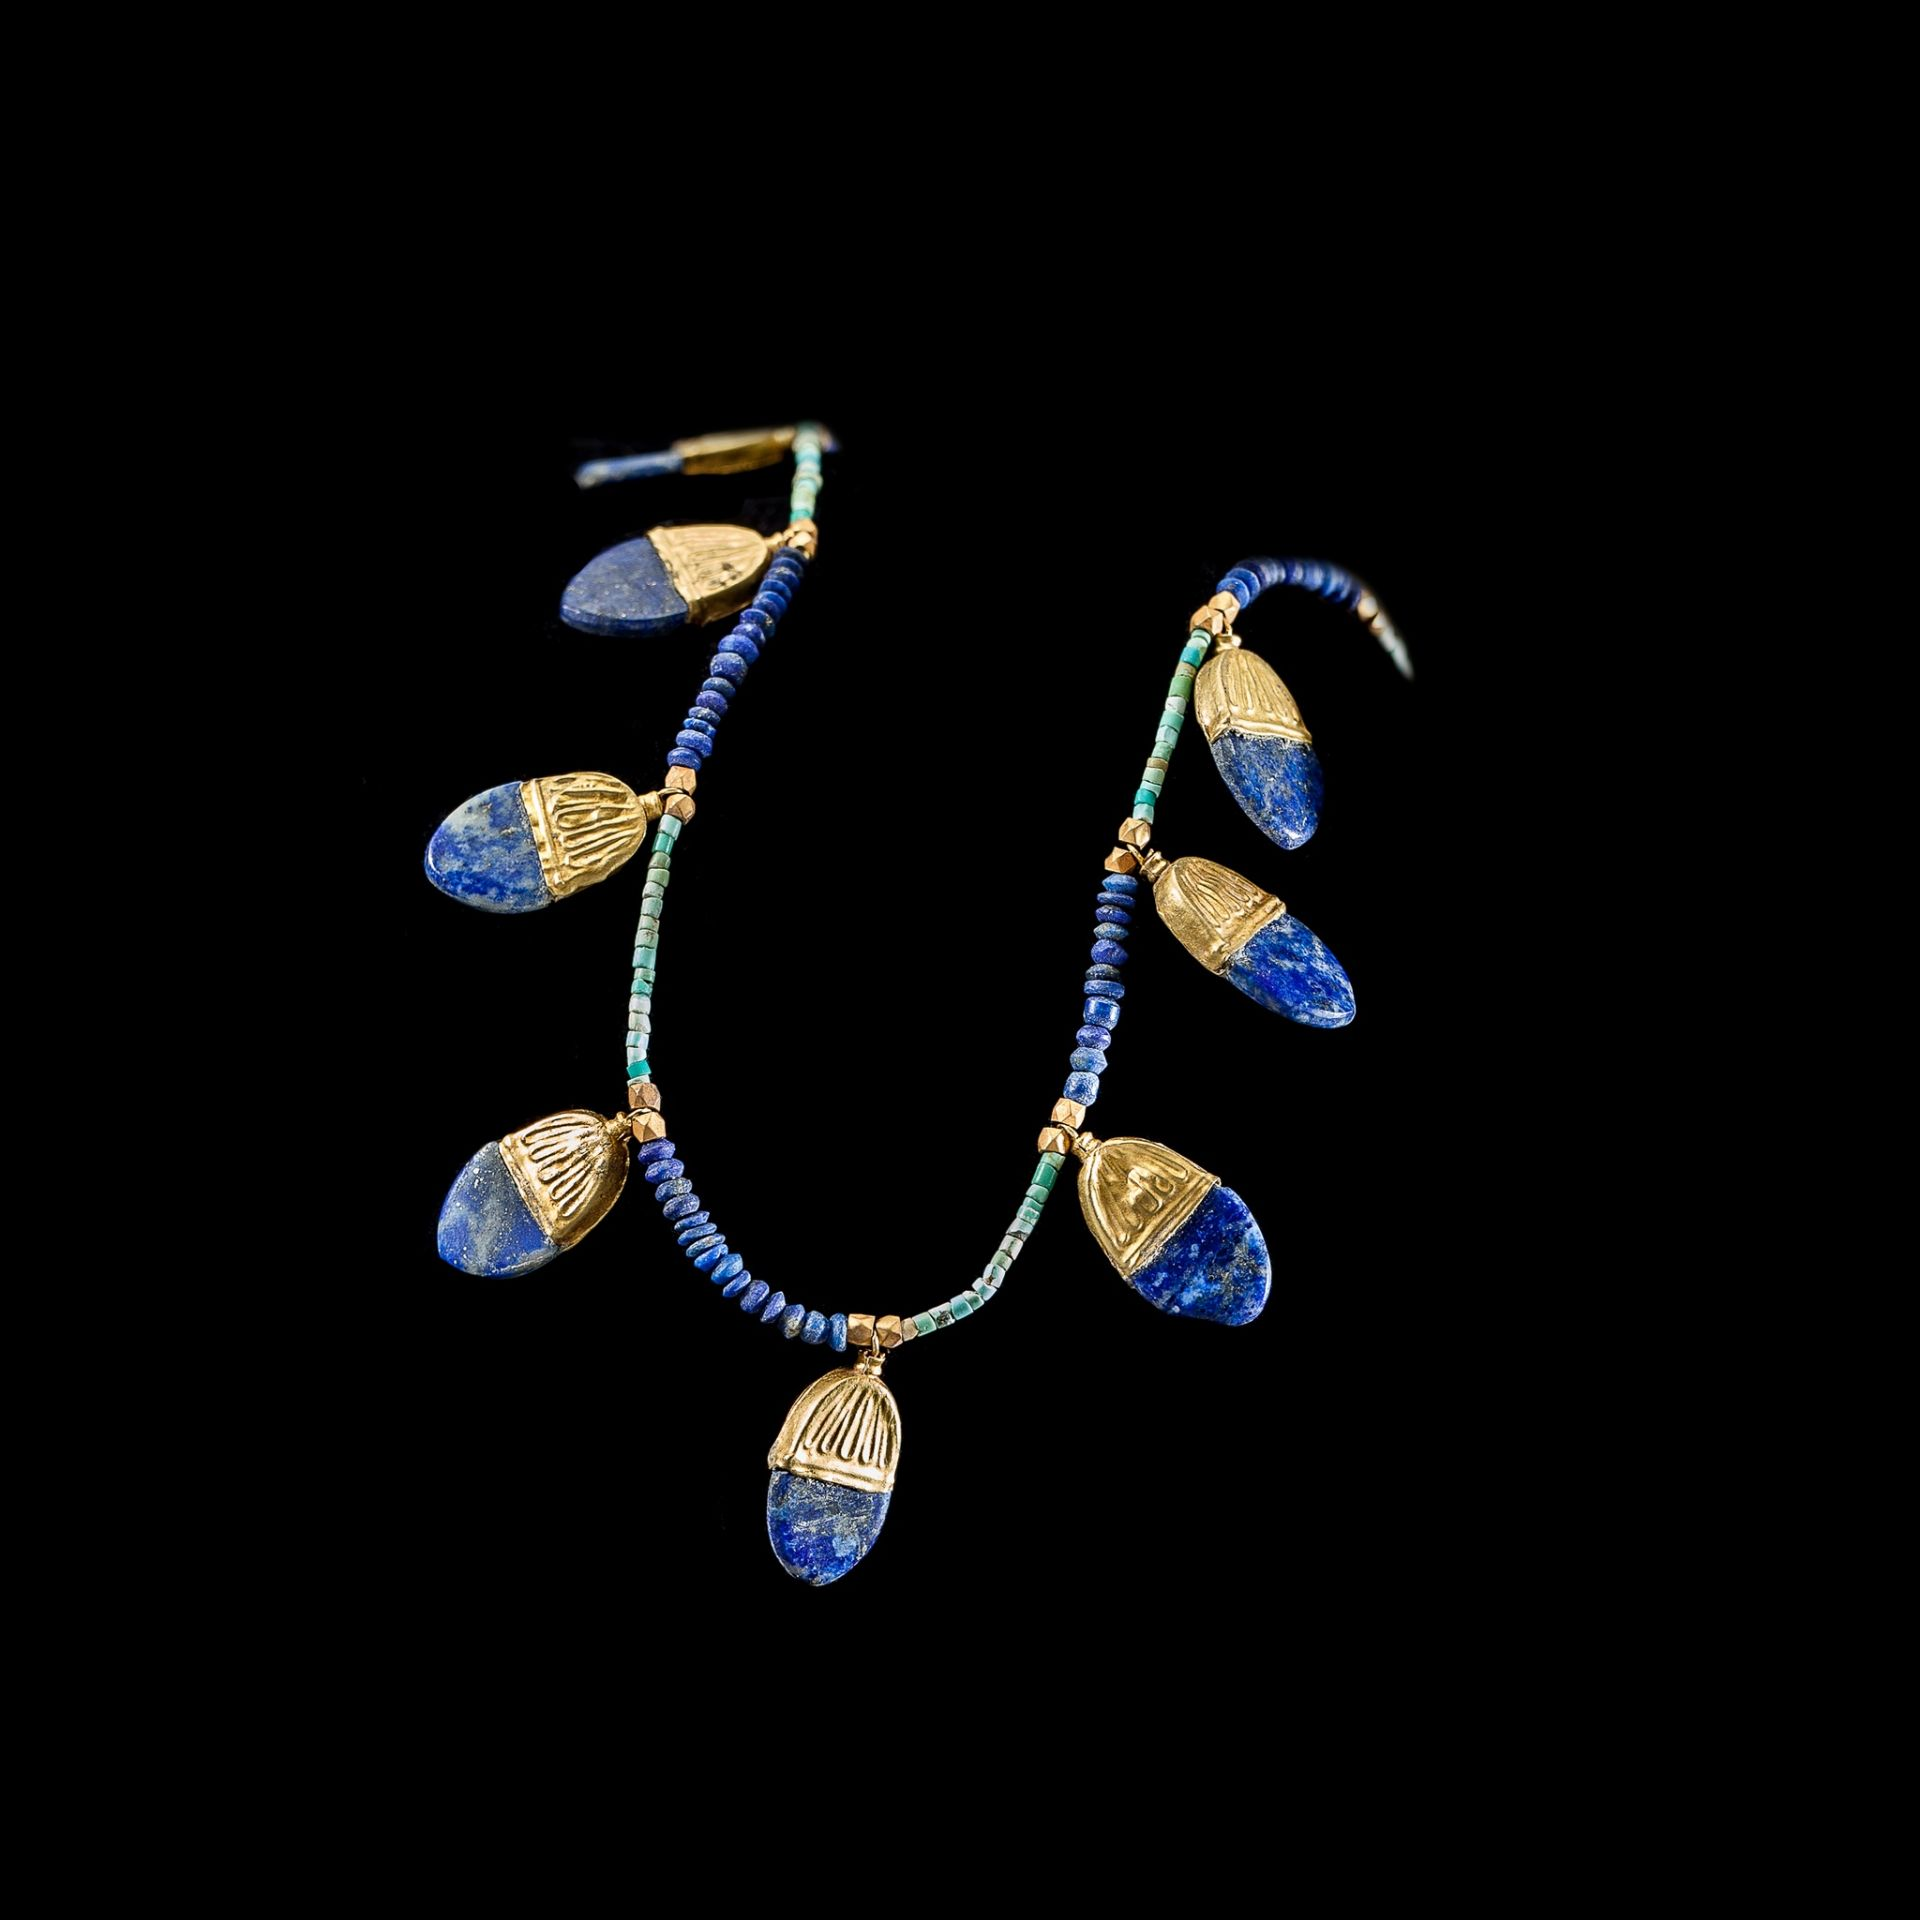 WESTERN ASIATIC LAPIS NECKLACE WITH GOLD PENDANTS NEAR EAST, 1ST MILLENNIUM B.C. - Image 2 of 3